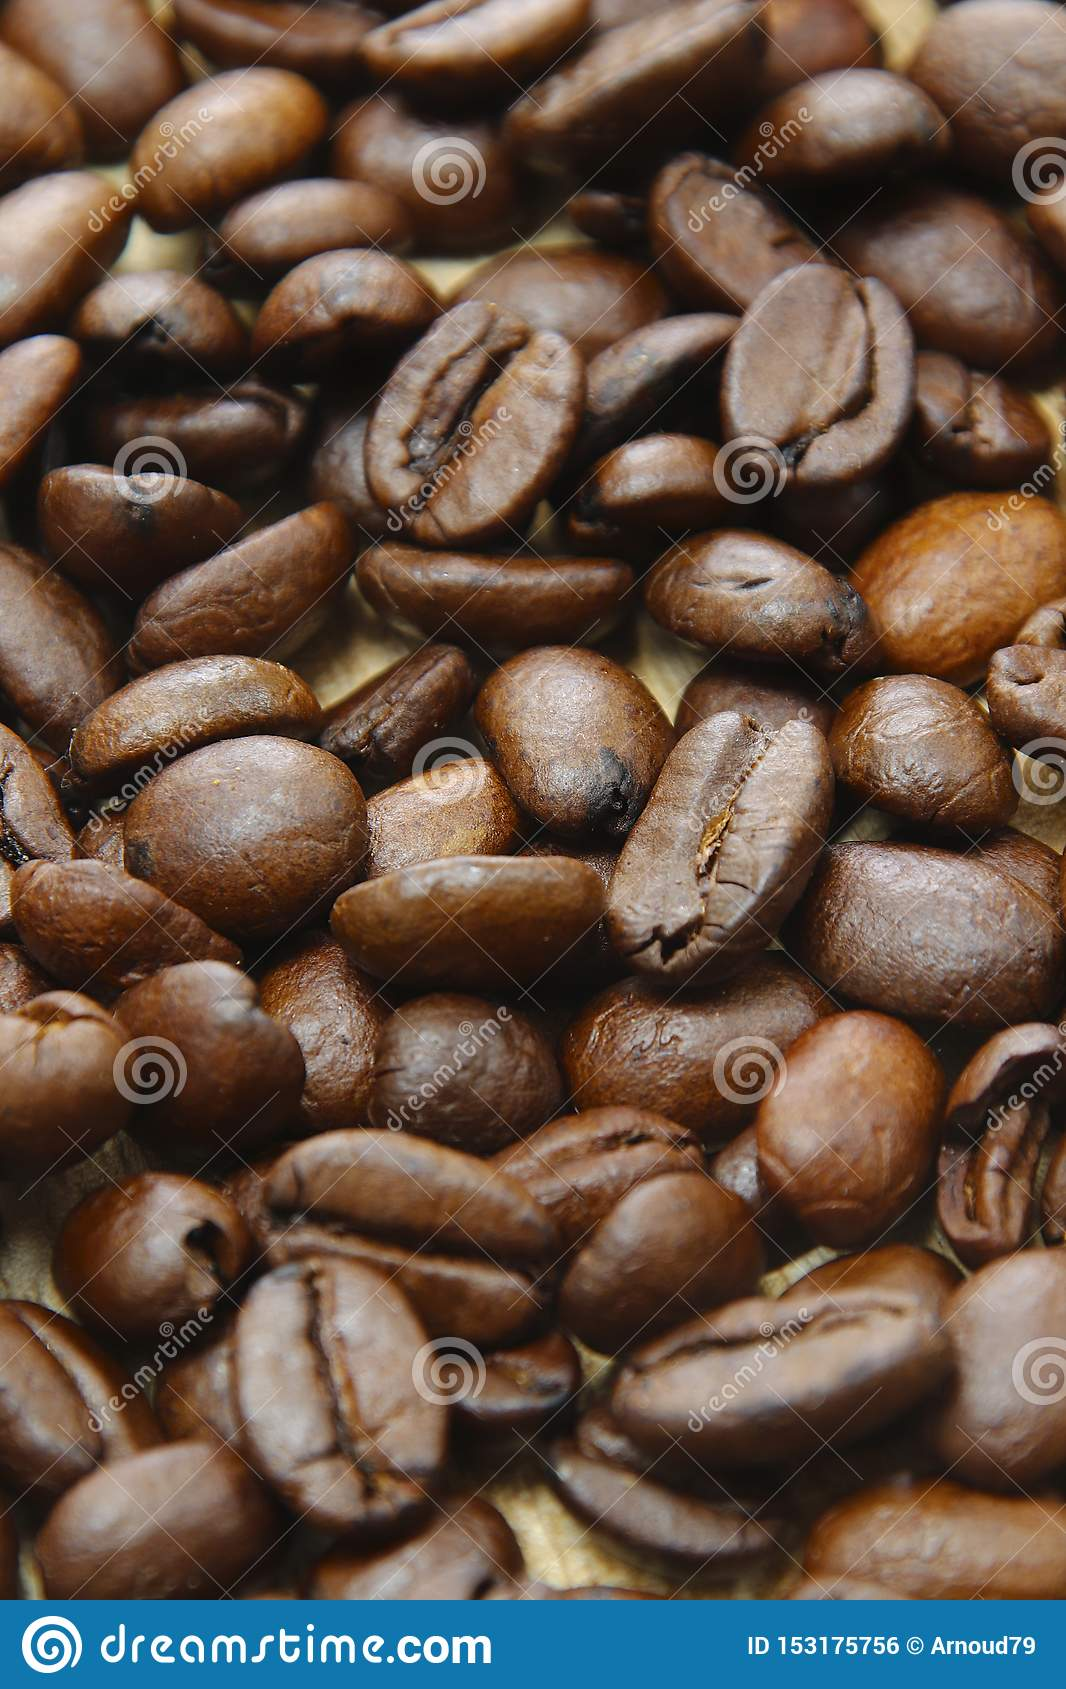 Roasted coffee beans on a wooden background espresso black